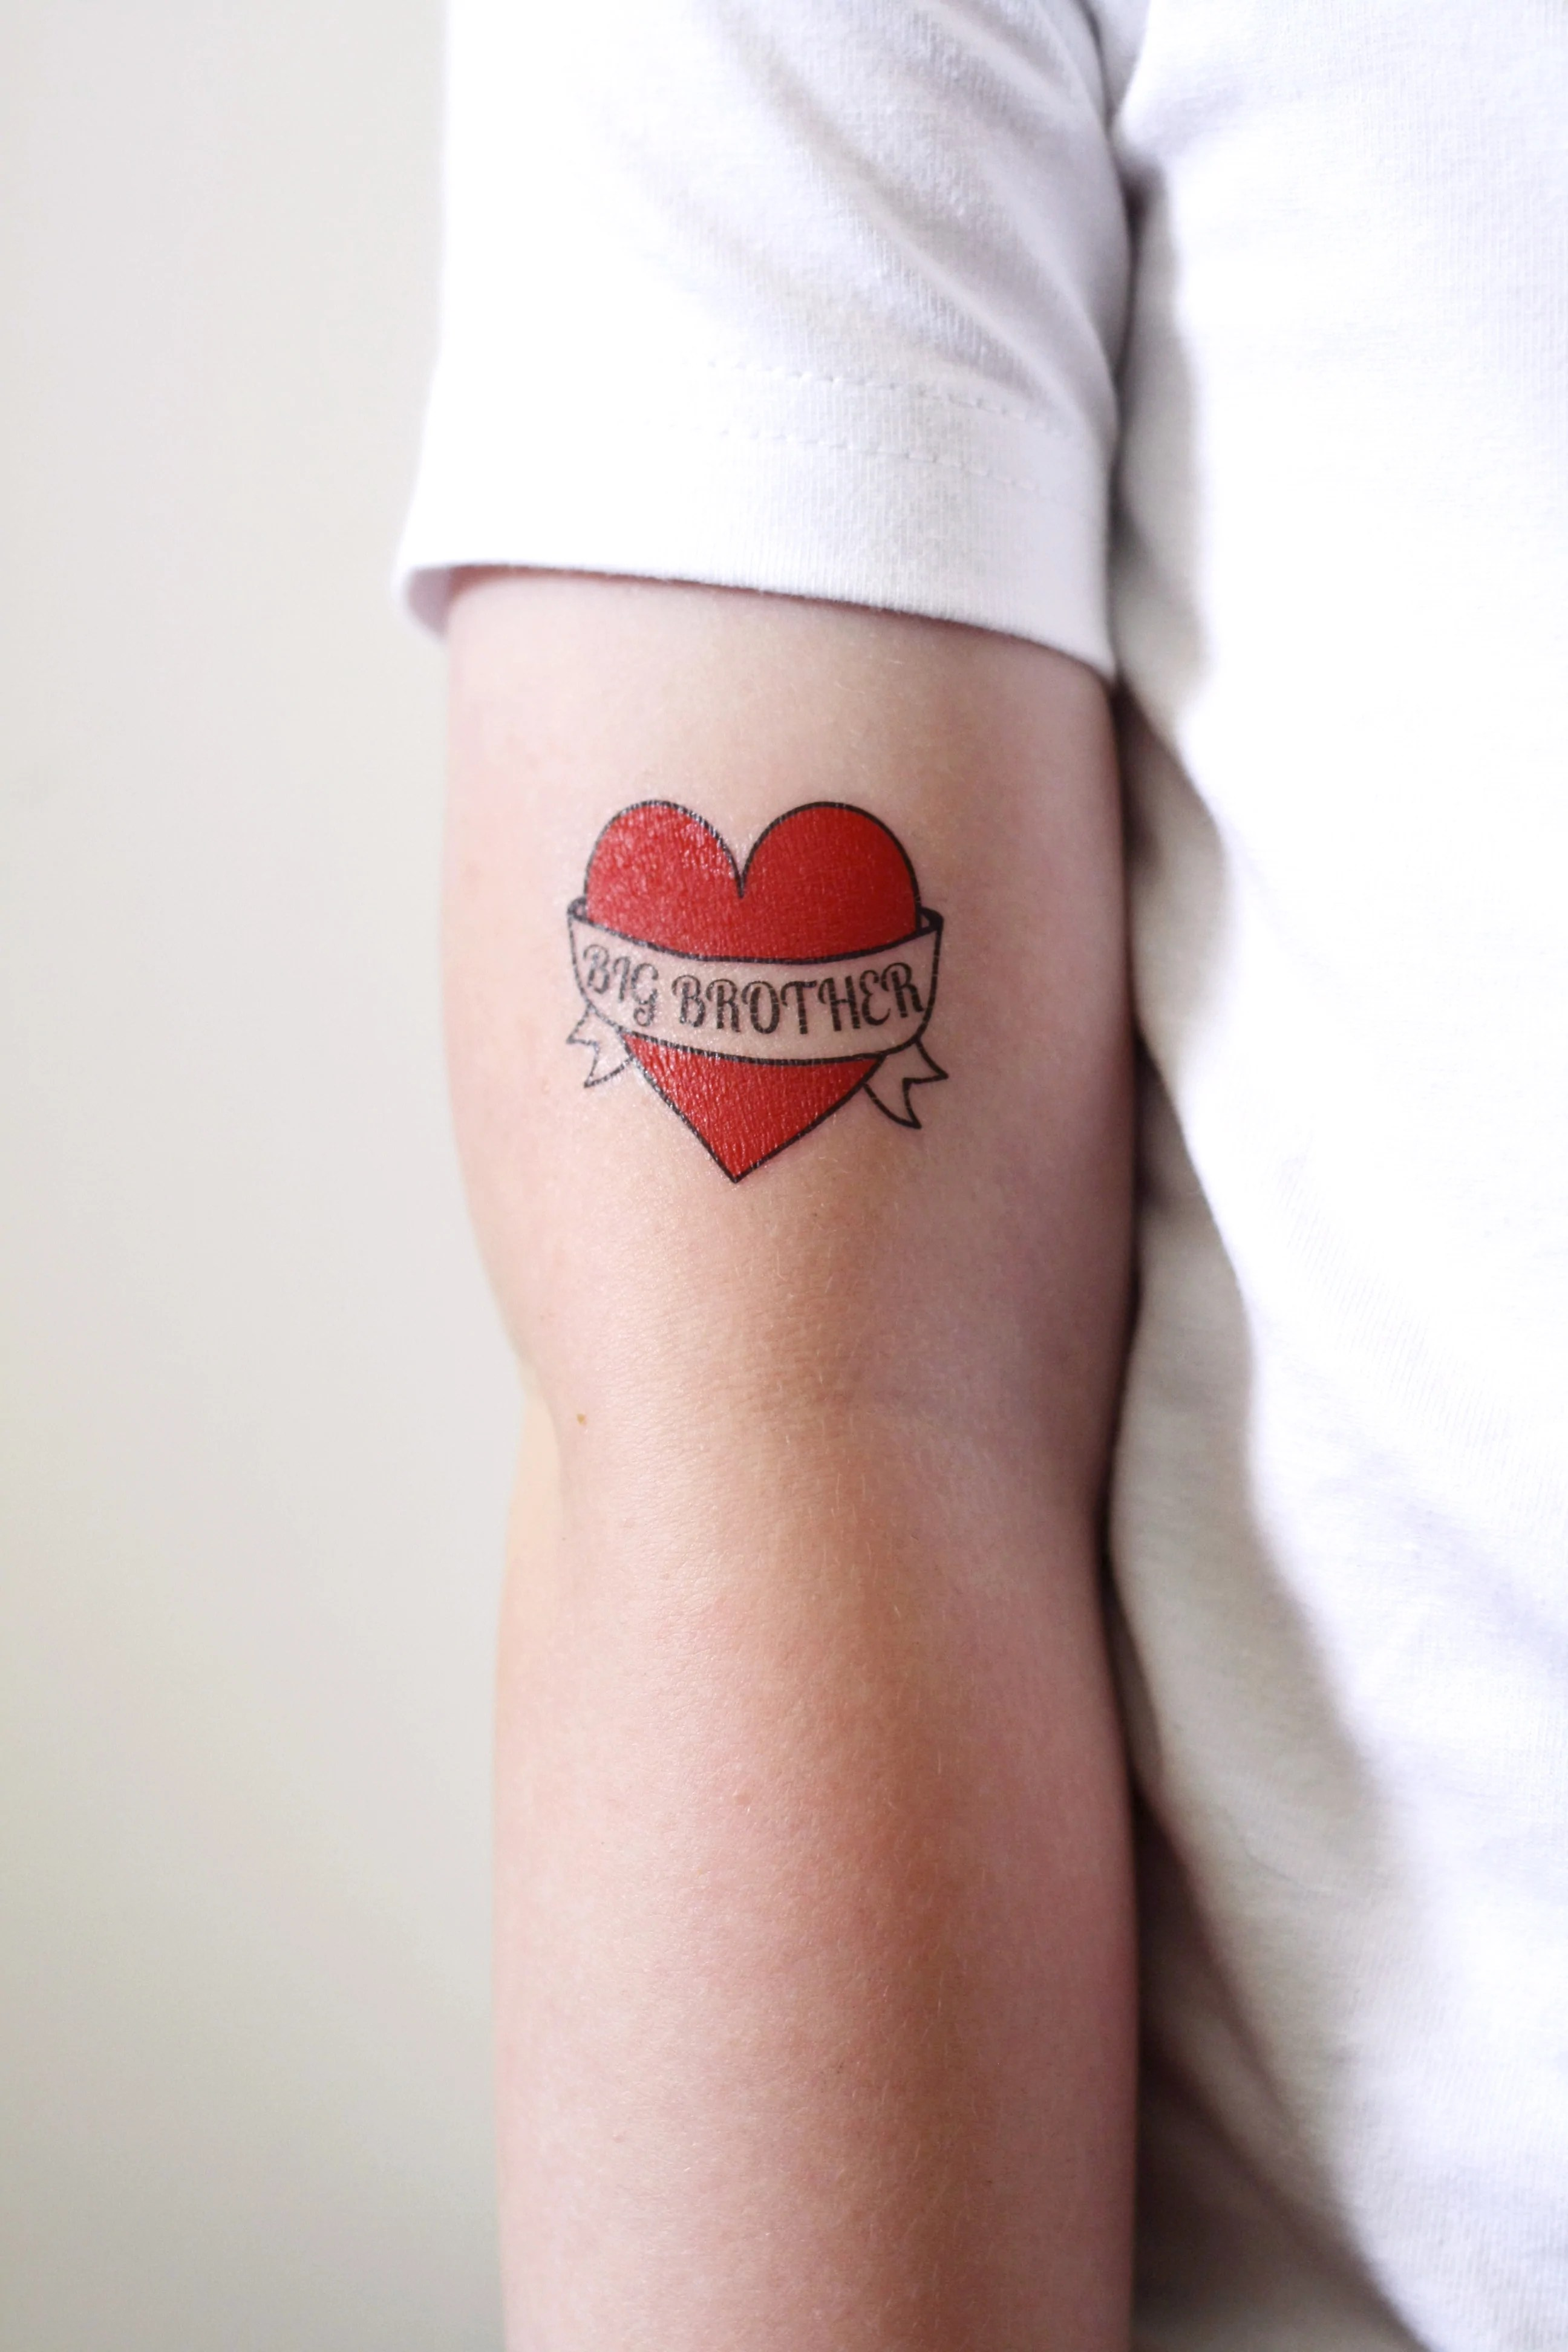 Big Brother Temporary Tattoo – Temporary Tattoos By Tattoorary Ideas And Designs